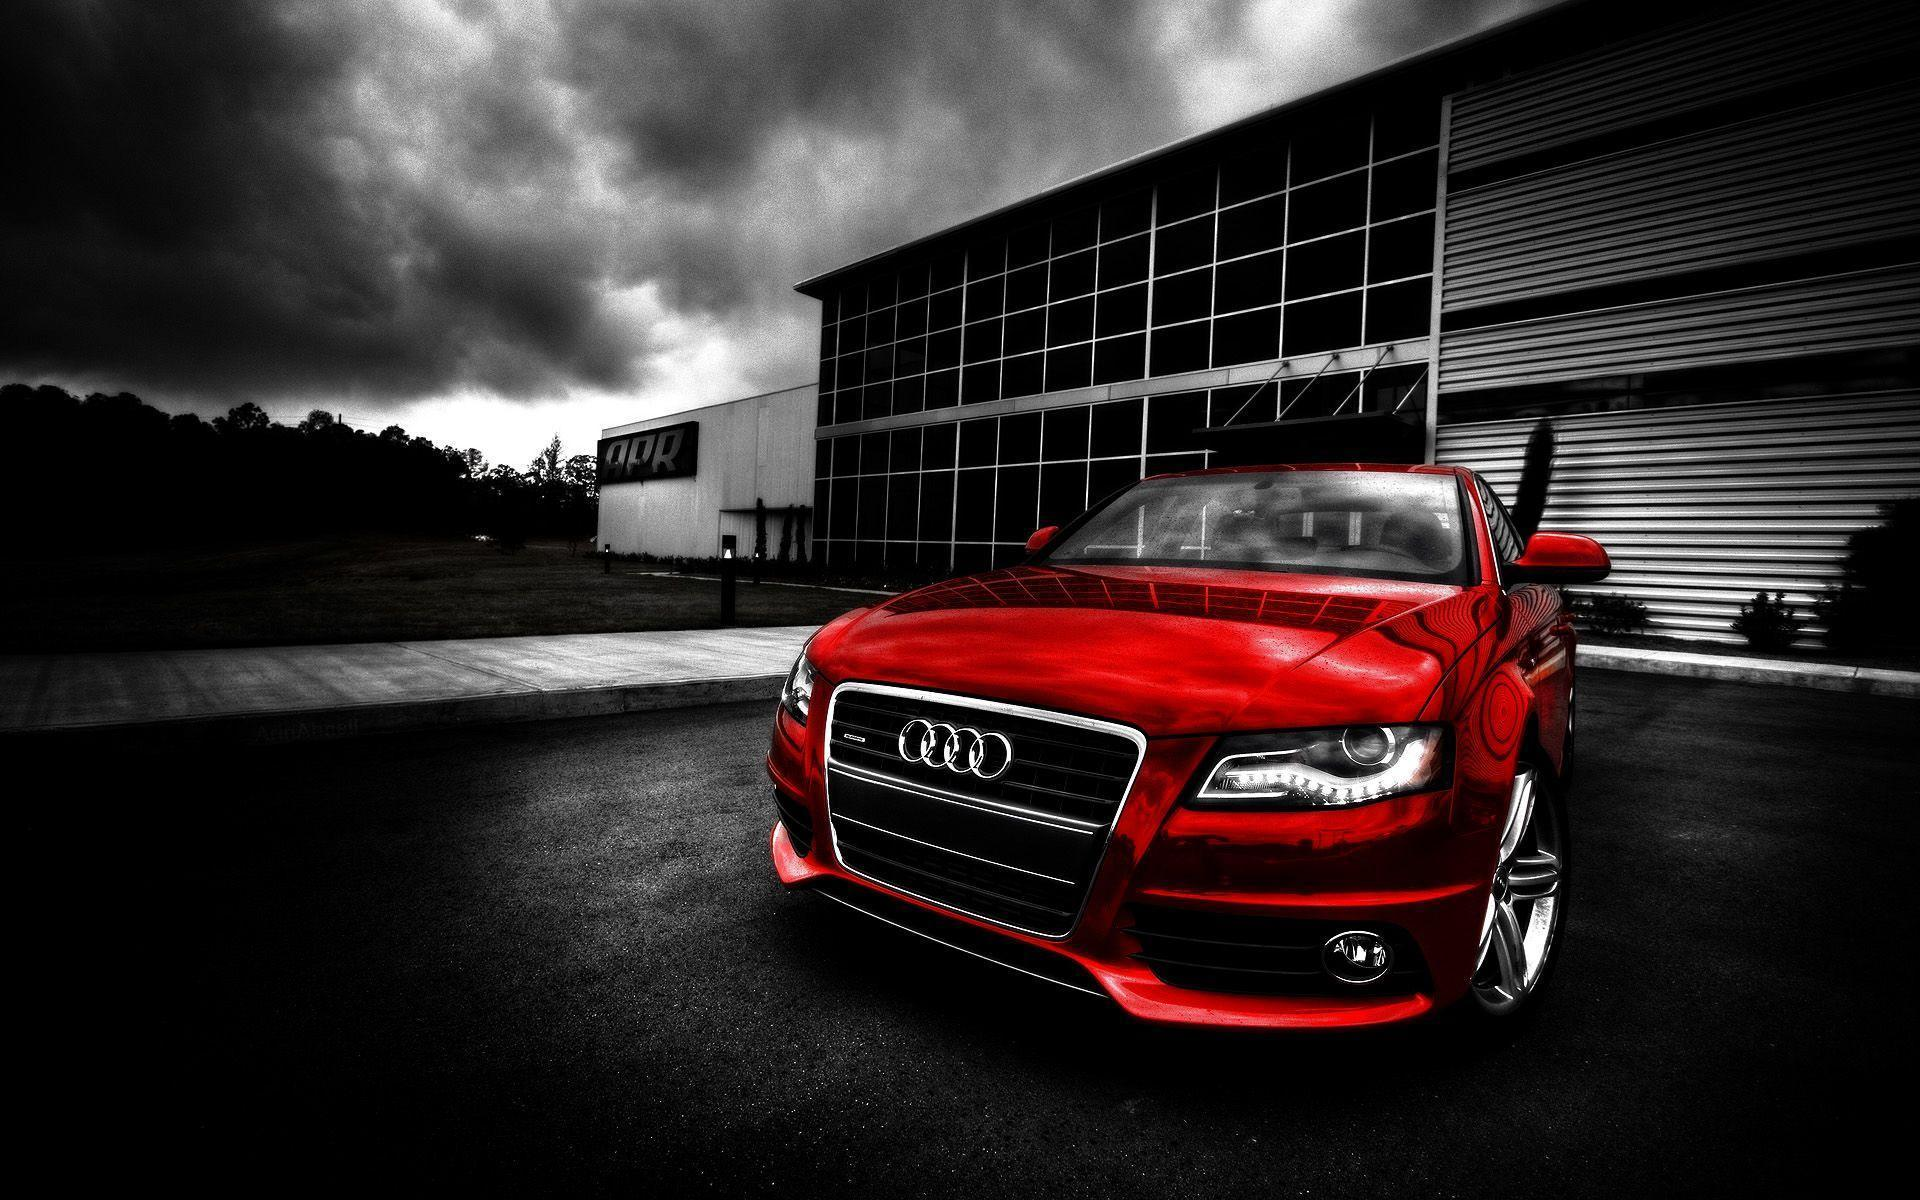 605 Audi HD Wallpapers | Background Images - Wallpaper Abyss